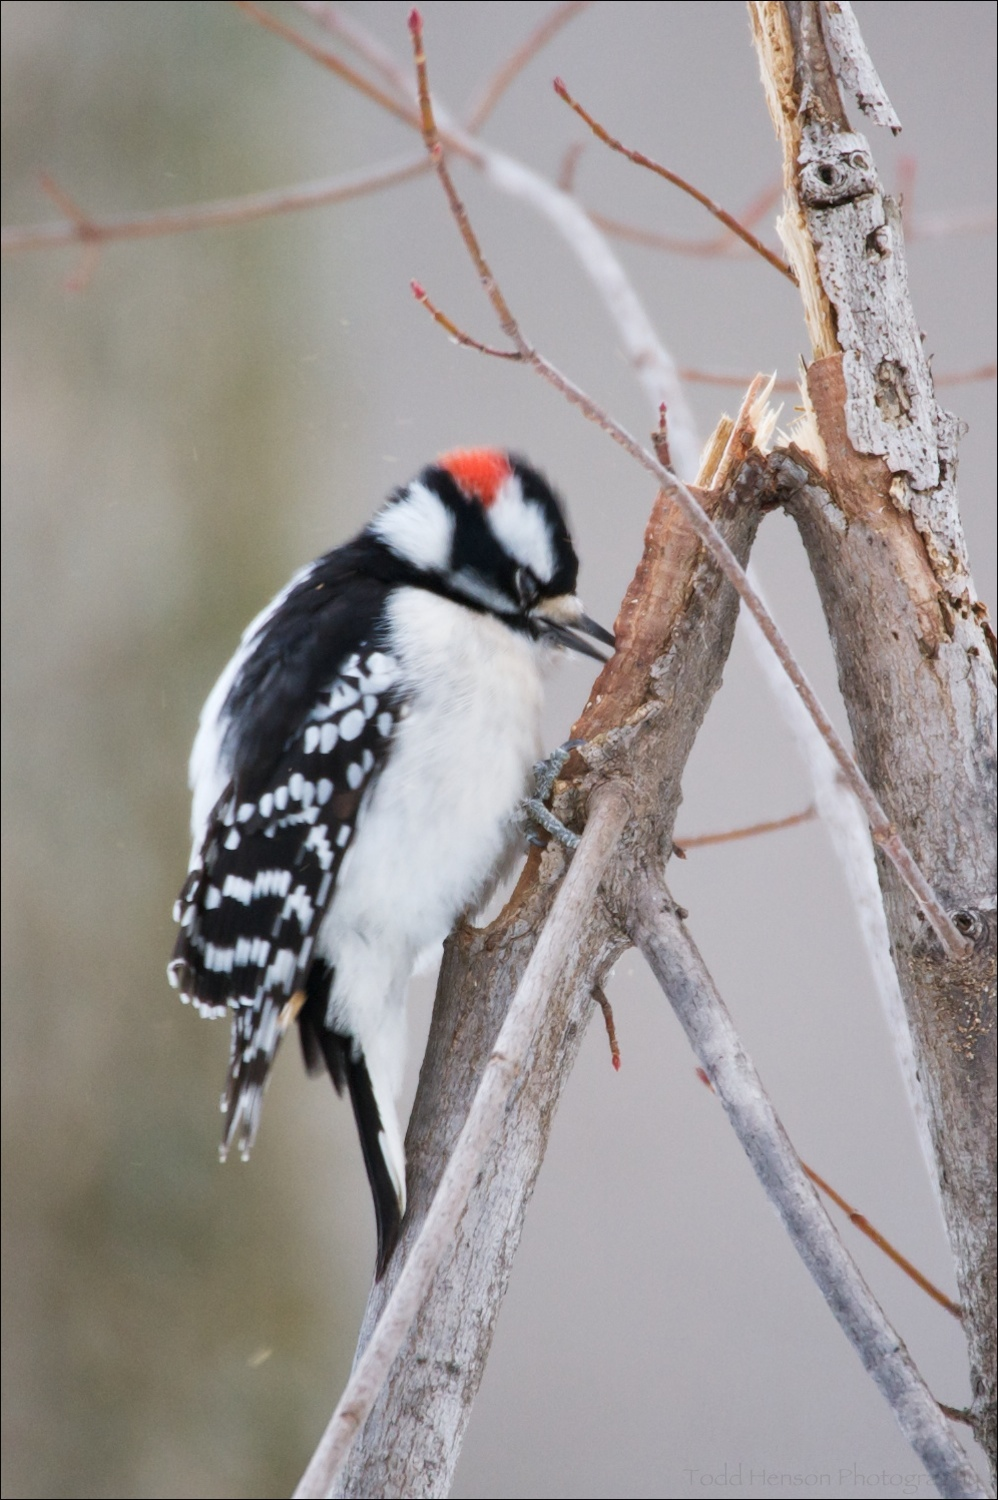 Male Downy Woodpecker, having found another cracked branch, is pecking for insects. Again, notice the closed eyes.